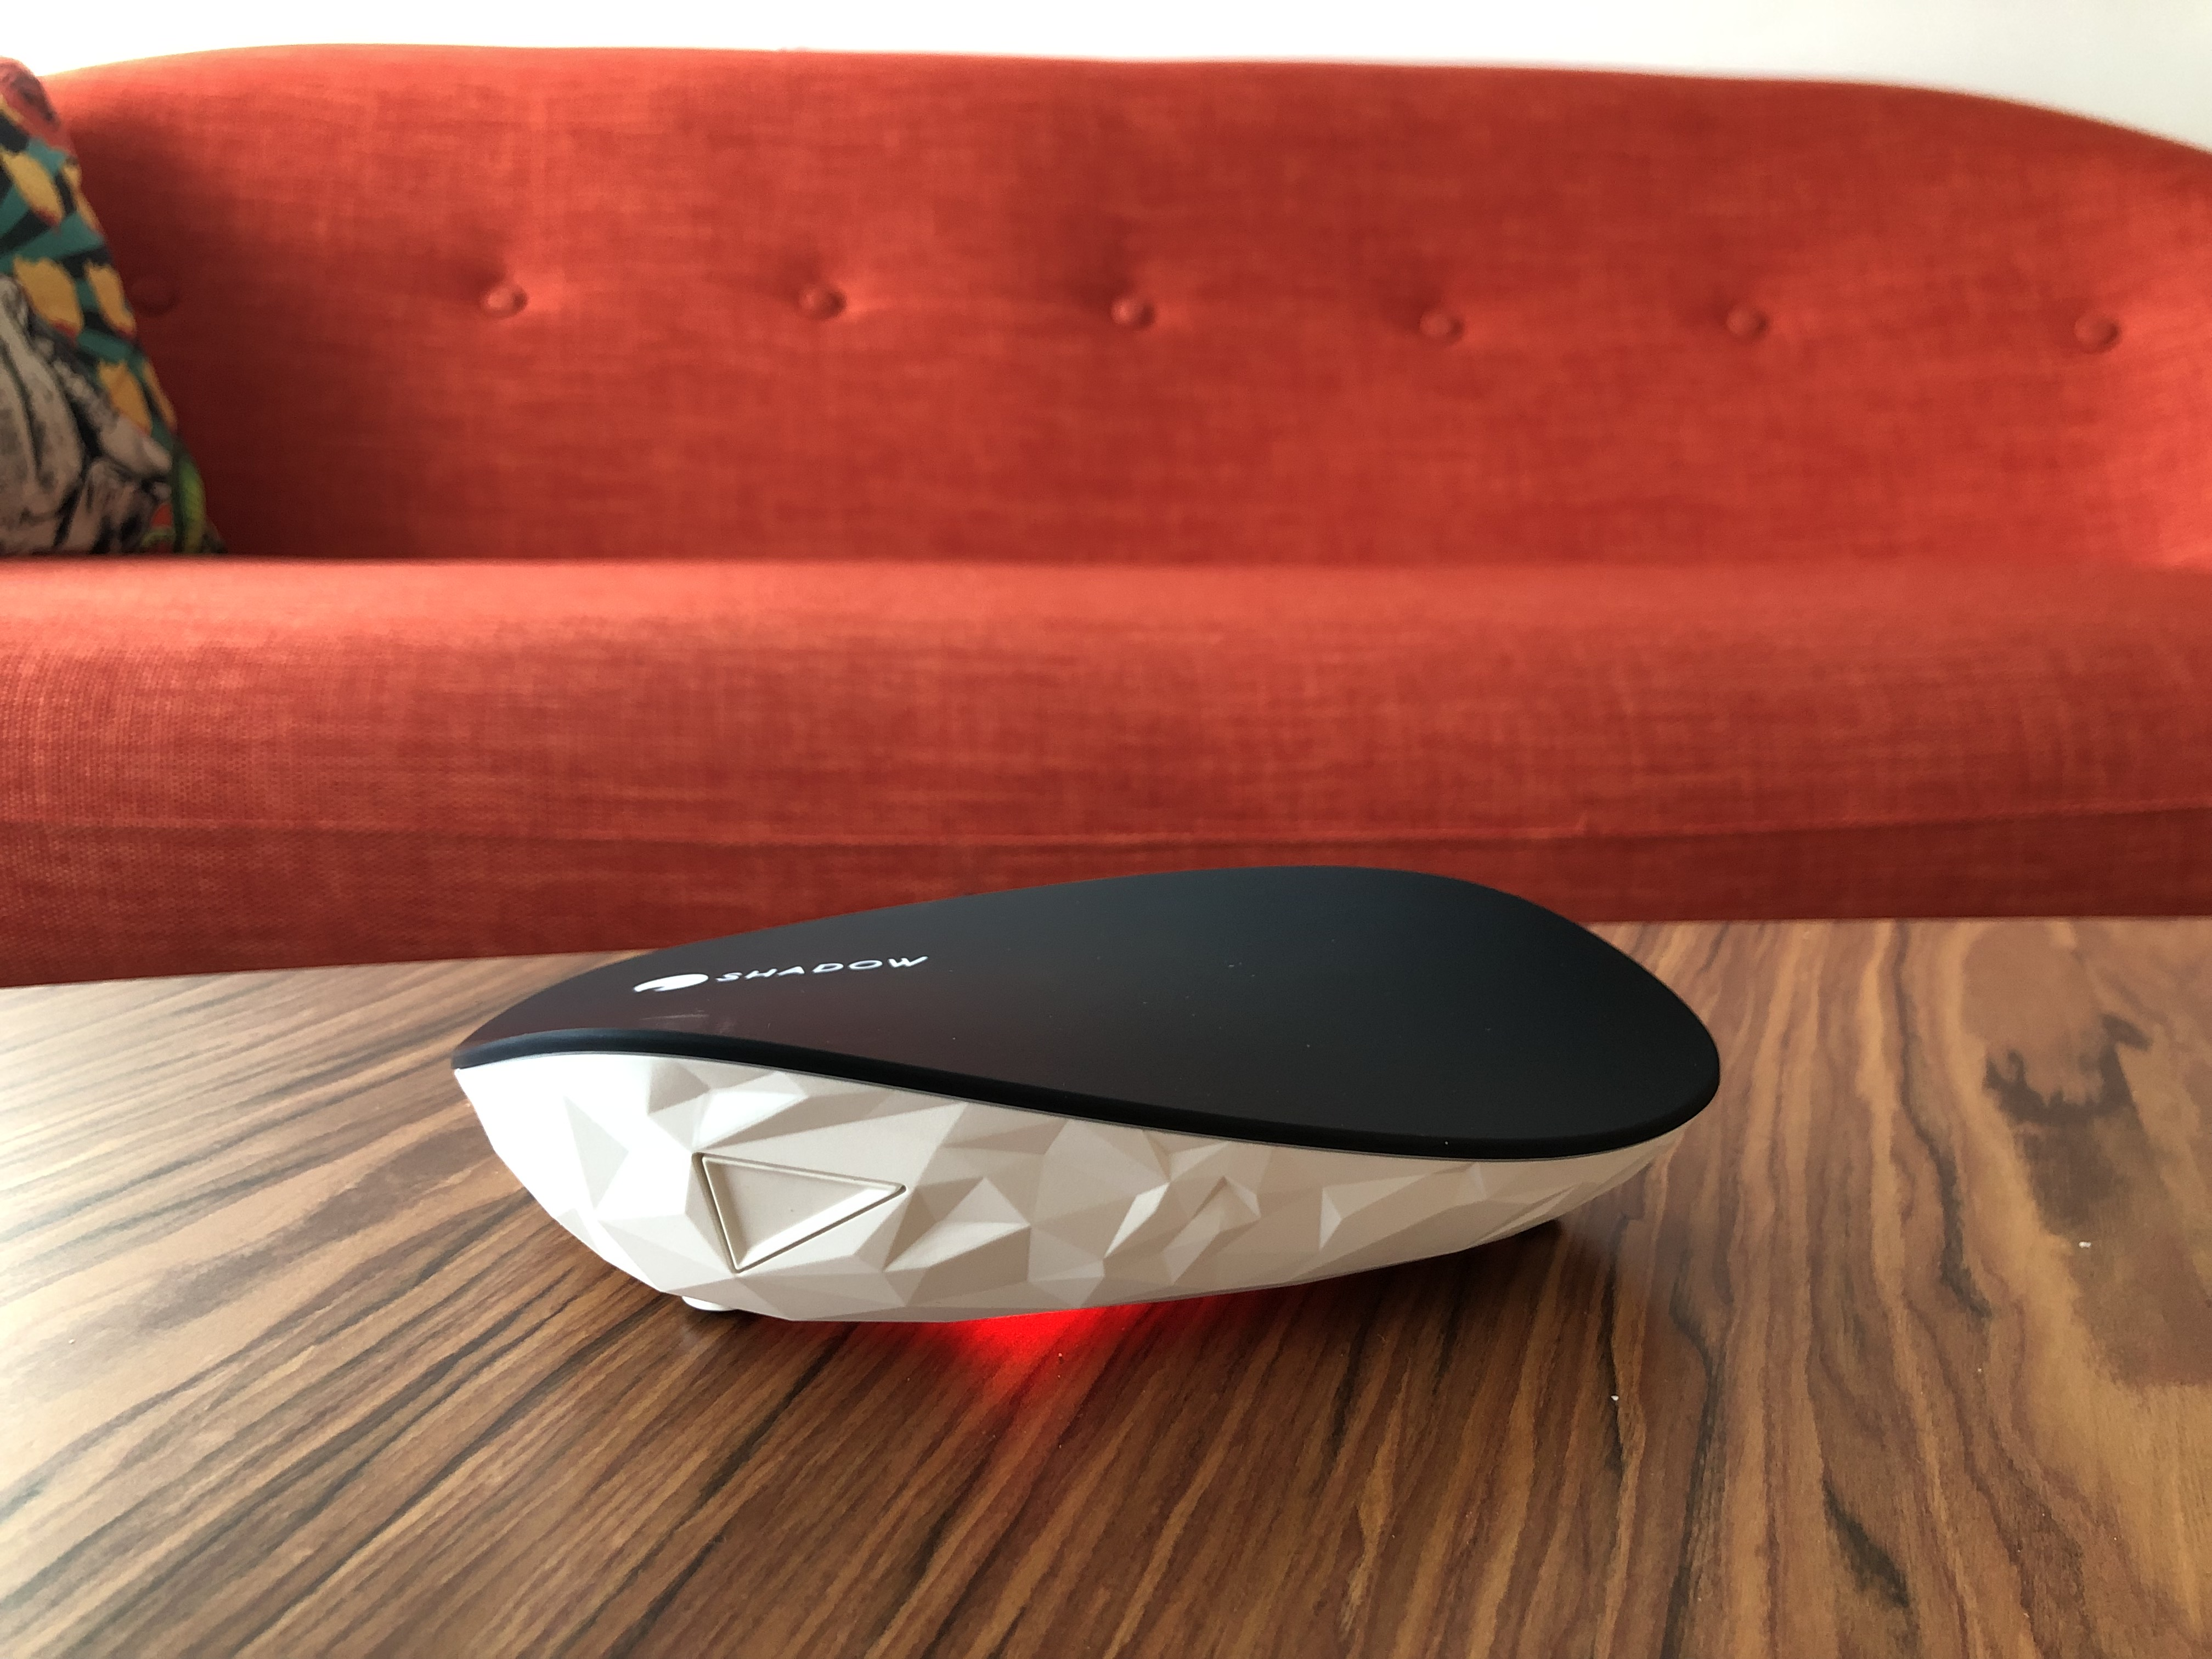 The Shadow Ghost turns cloud gaming into a seamless experience